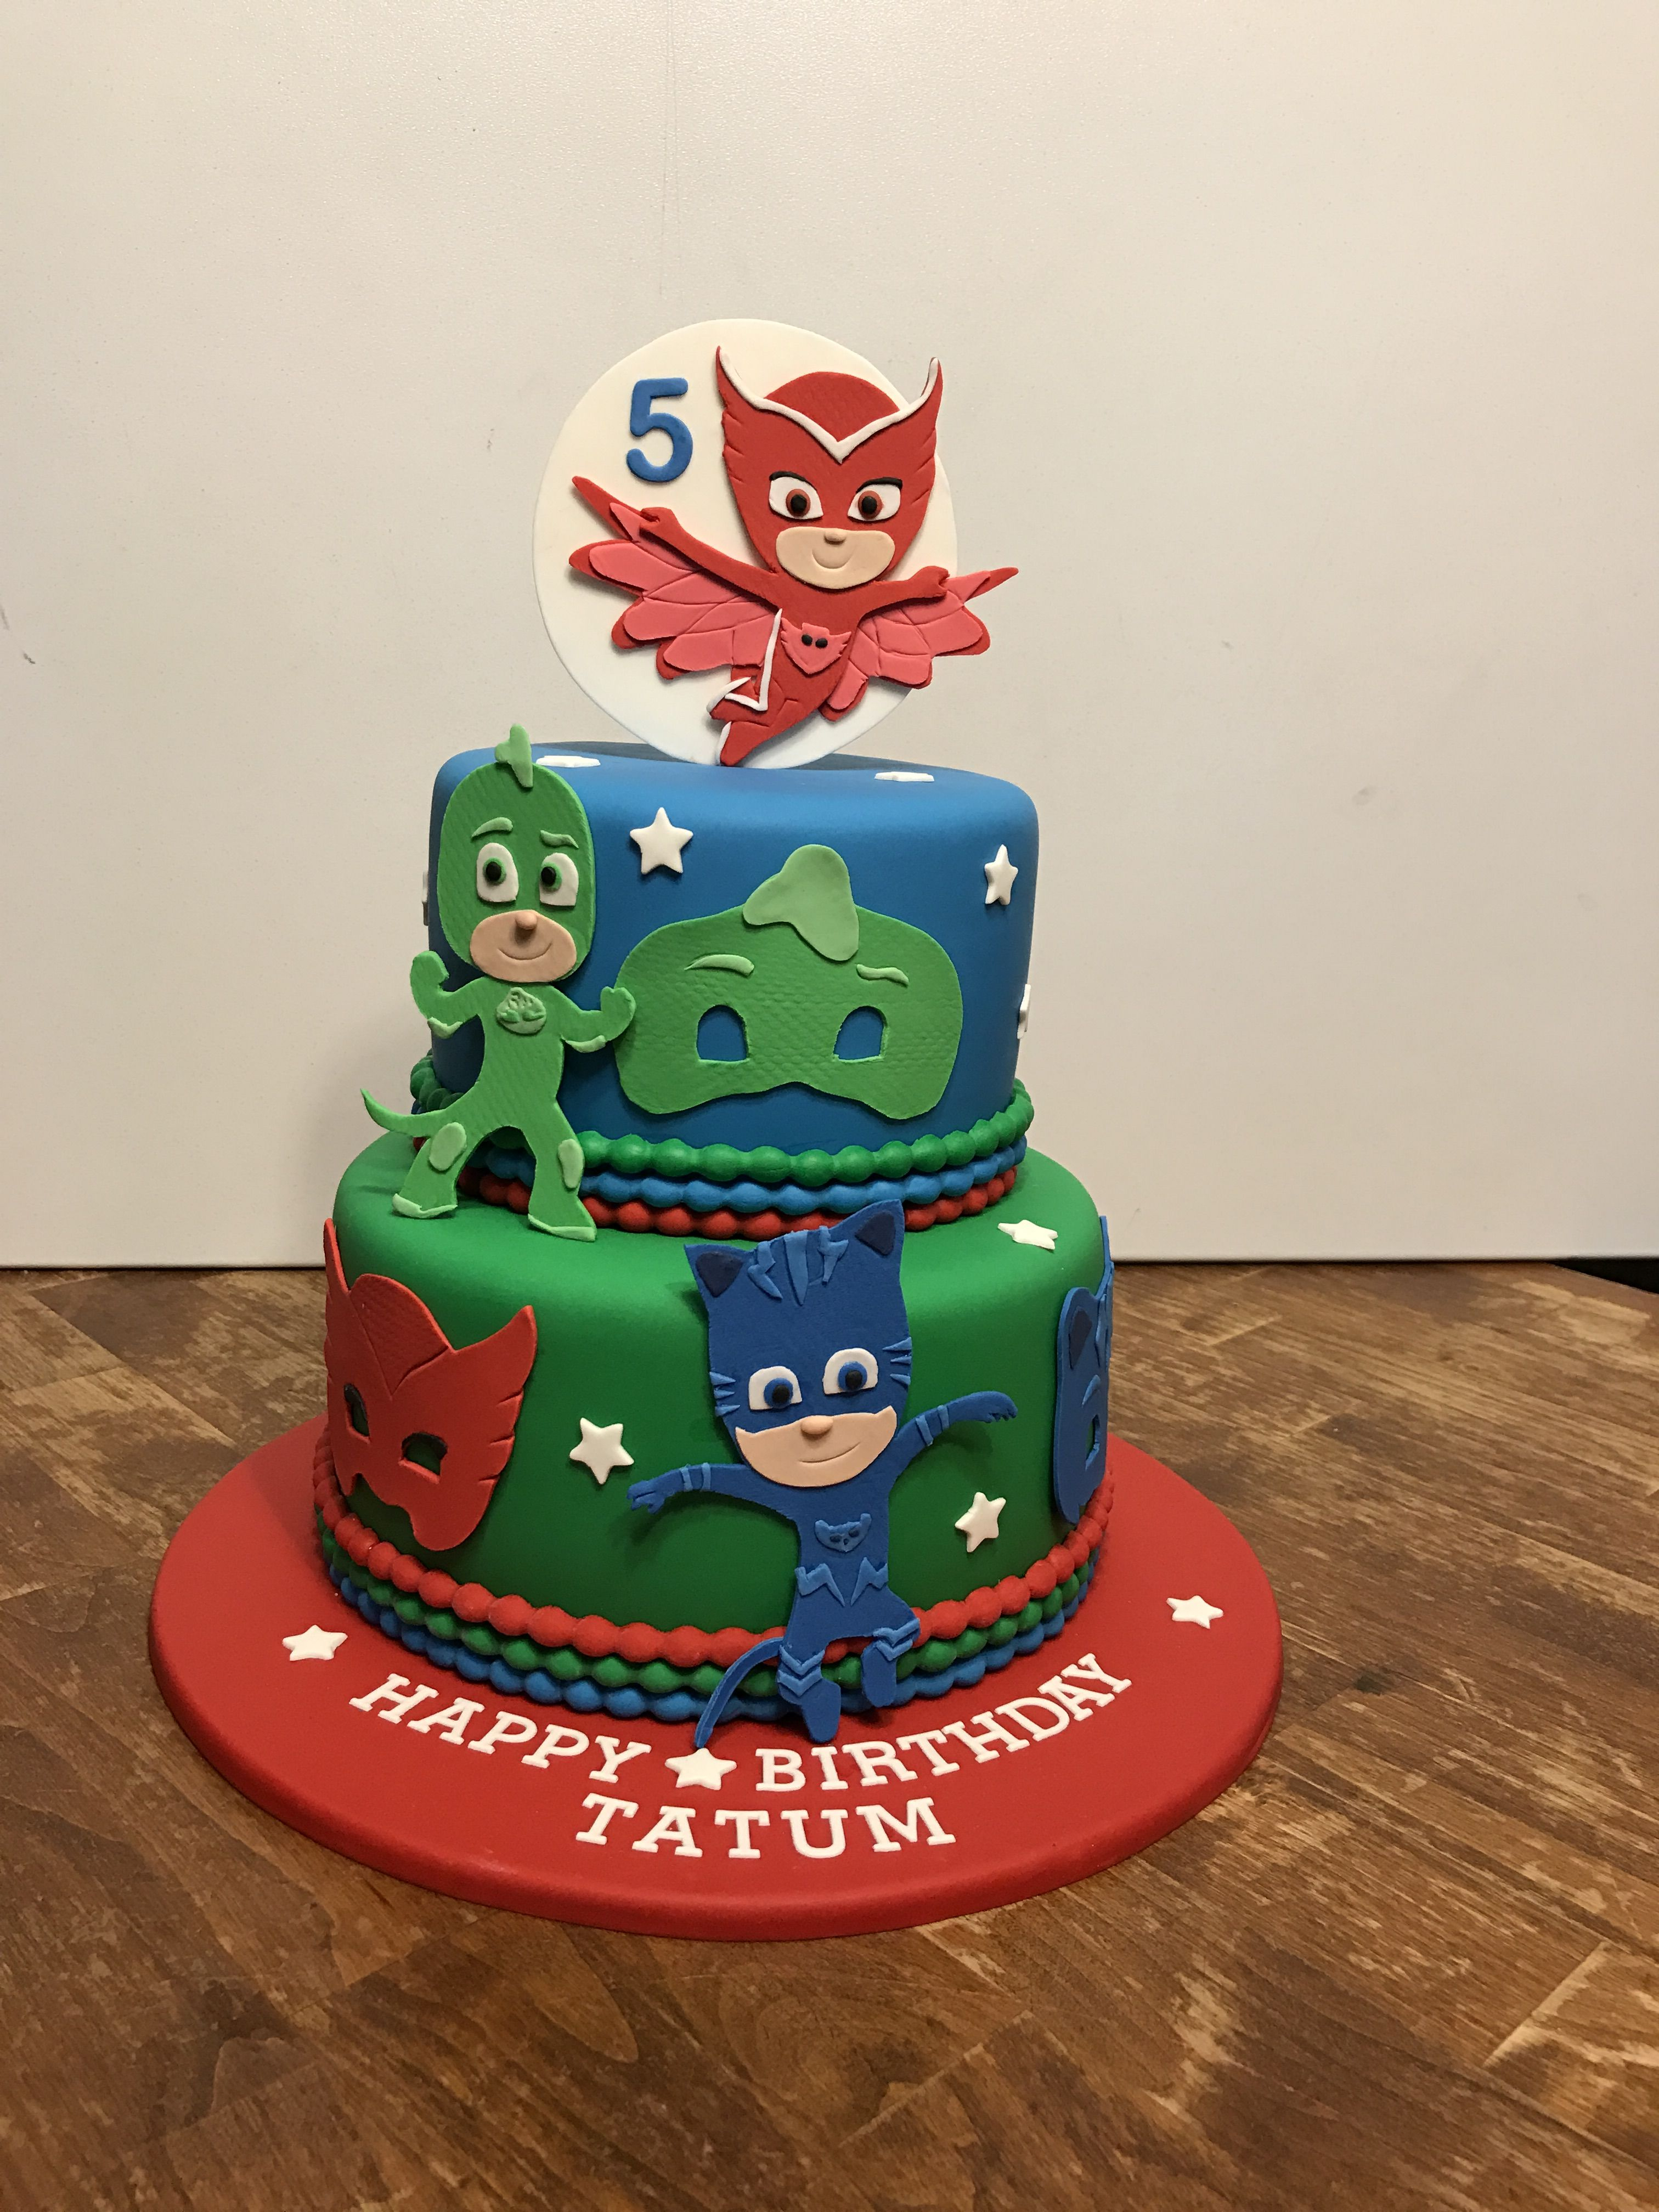 Pj Masks Birthday Cake With Images Pj Masks Birthday Cake Pj